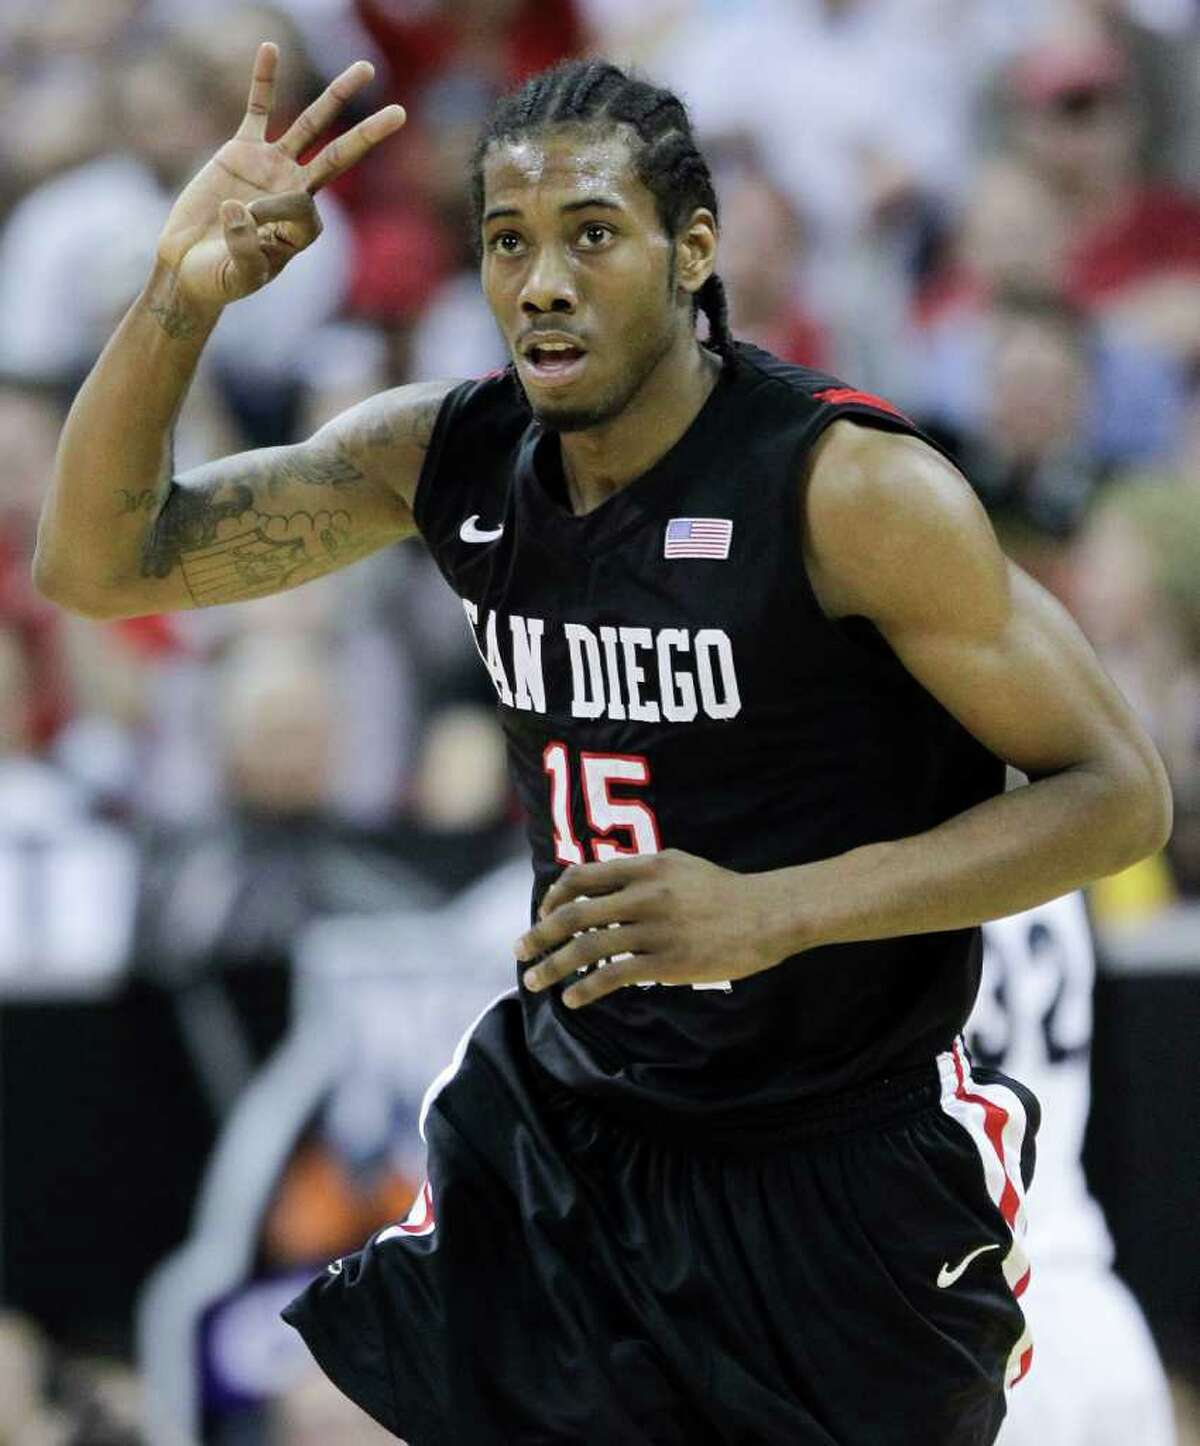 San Diego State's Kawhi Leonard gestures after hitting a three-point basket during the first half of an NCAA college basketball championship game against BYU in the Mountain West Conference tournament, Saturday, March 12, 2011, in Las Vegas. San Diego State won 72-54.